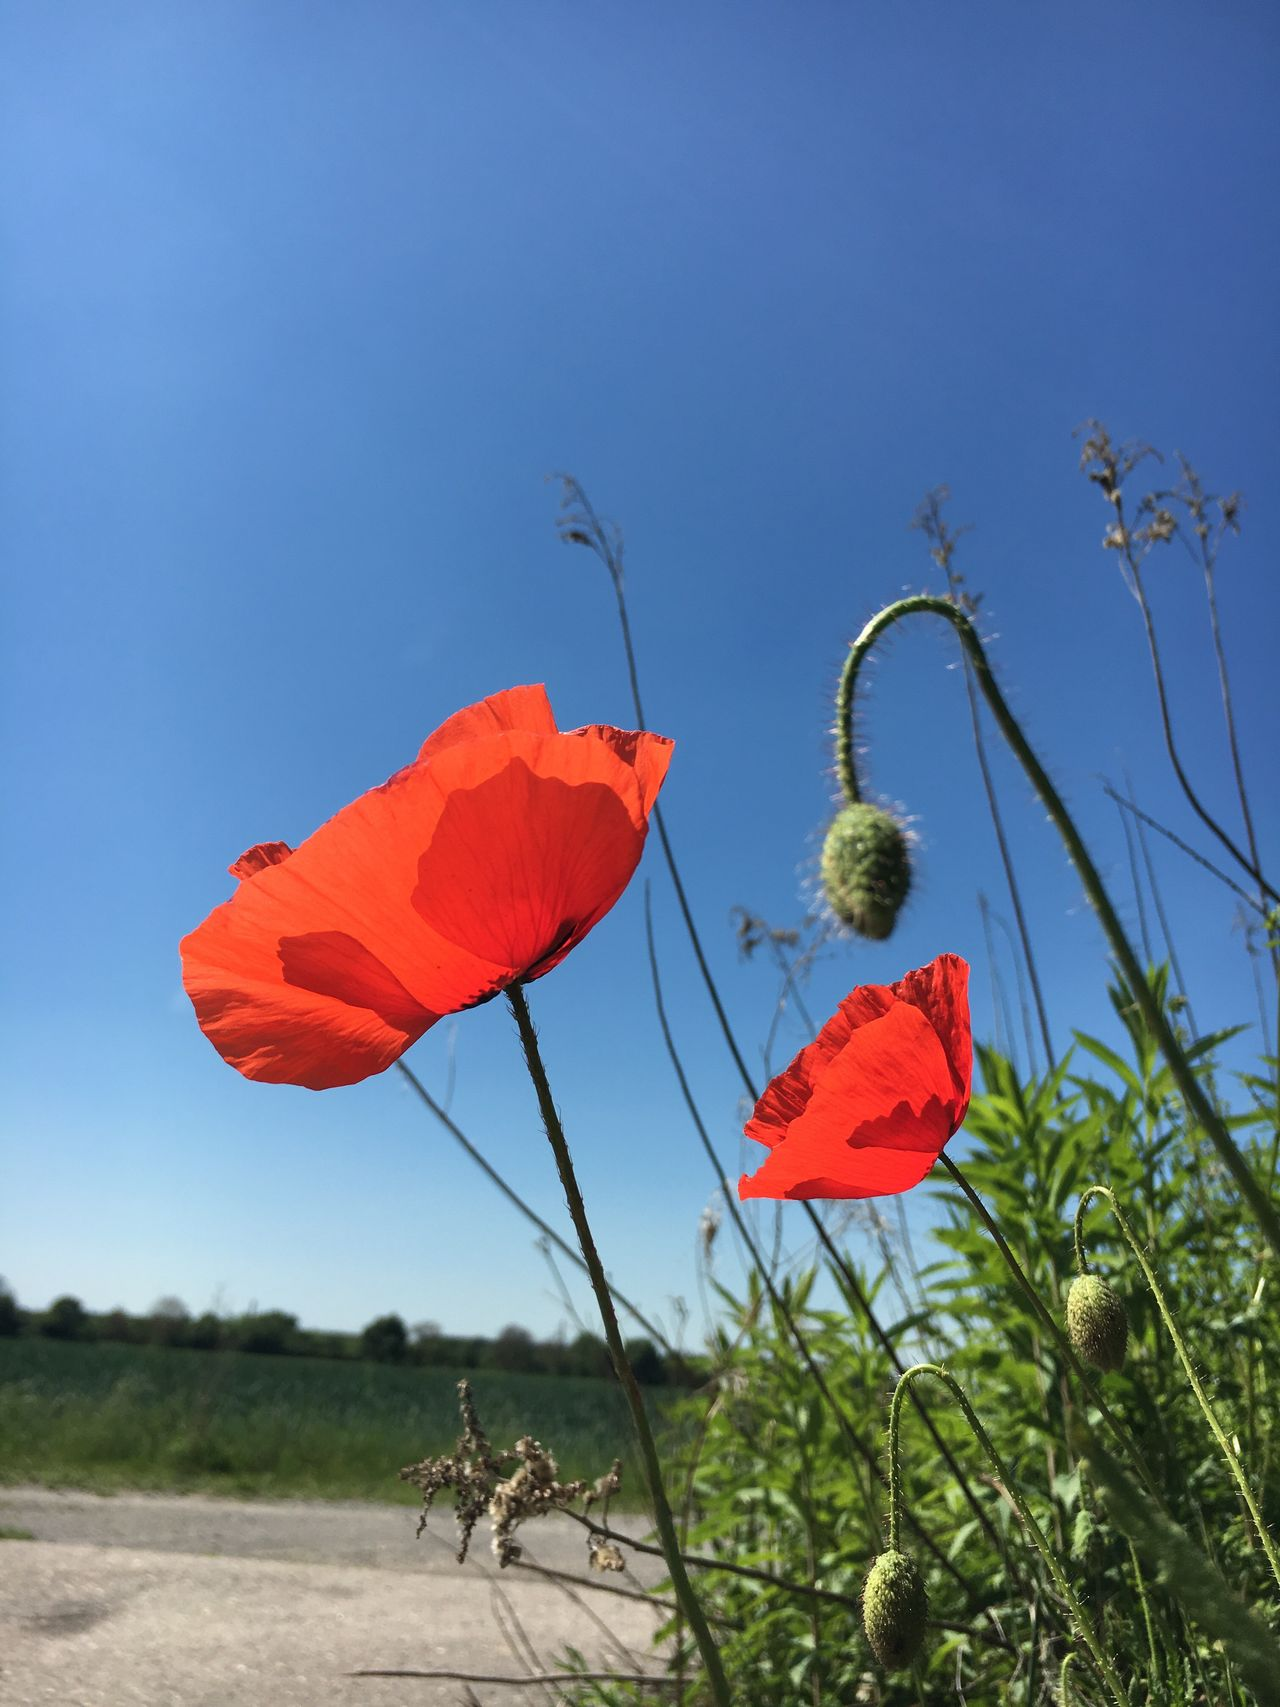 Poppy Flower Growth Flower Plant Nature Poppy Beauty In Nature Clear Sky No People Field Blue Day Outdoors Red Fragility Sky Freshness Flower Head Close-up Poppy Flowers Poppies